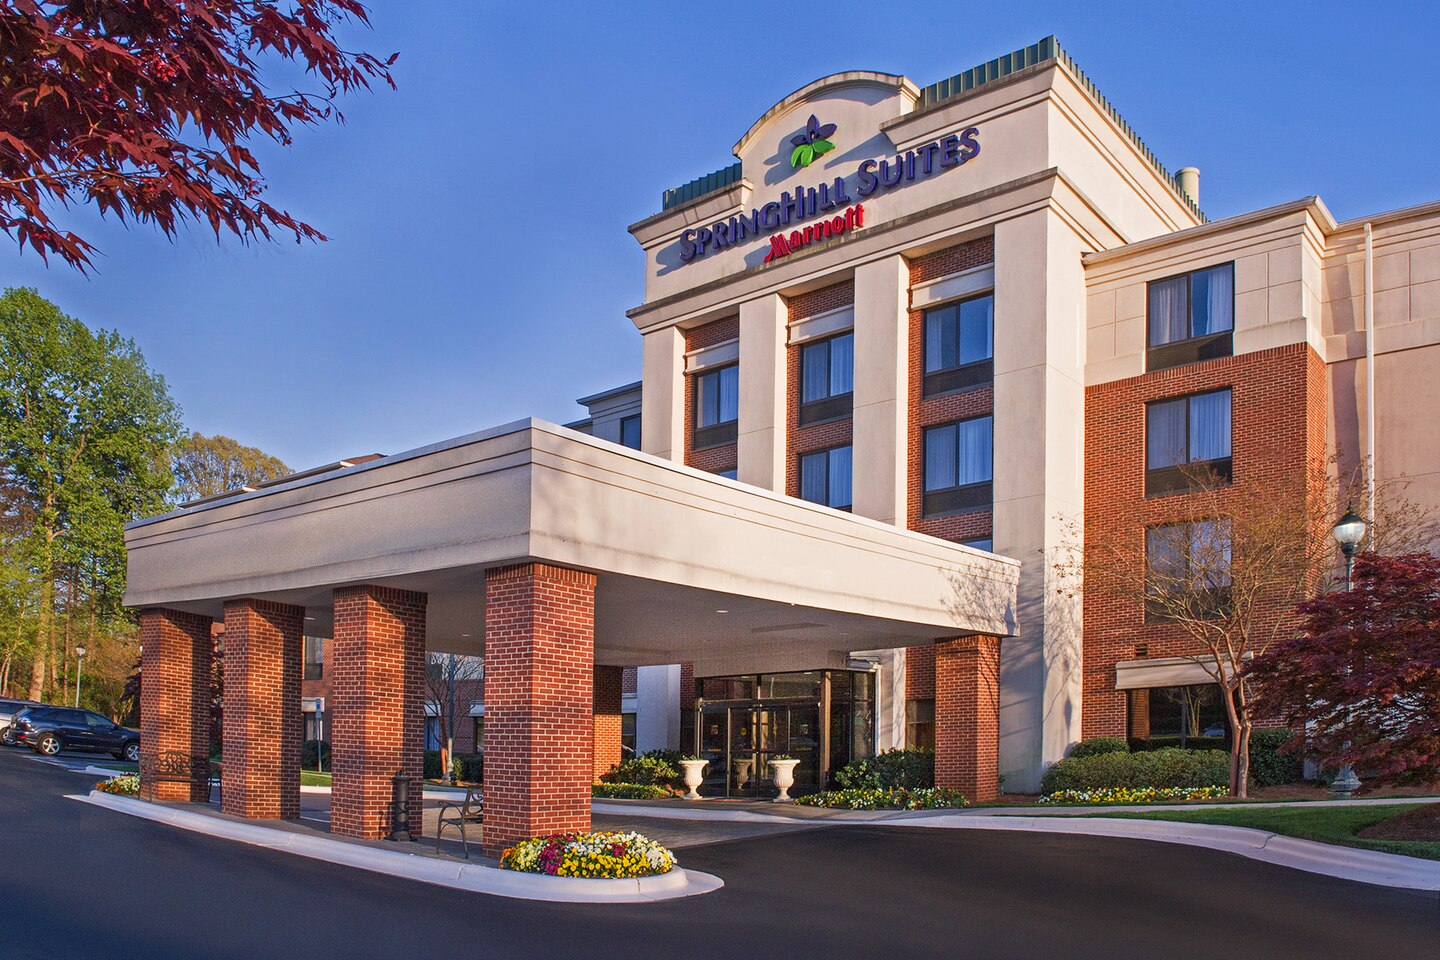 Springhill Suites Charlotte Offers Anti-Viral Protection with Pure Rooms